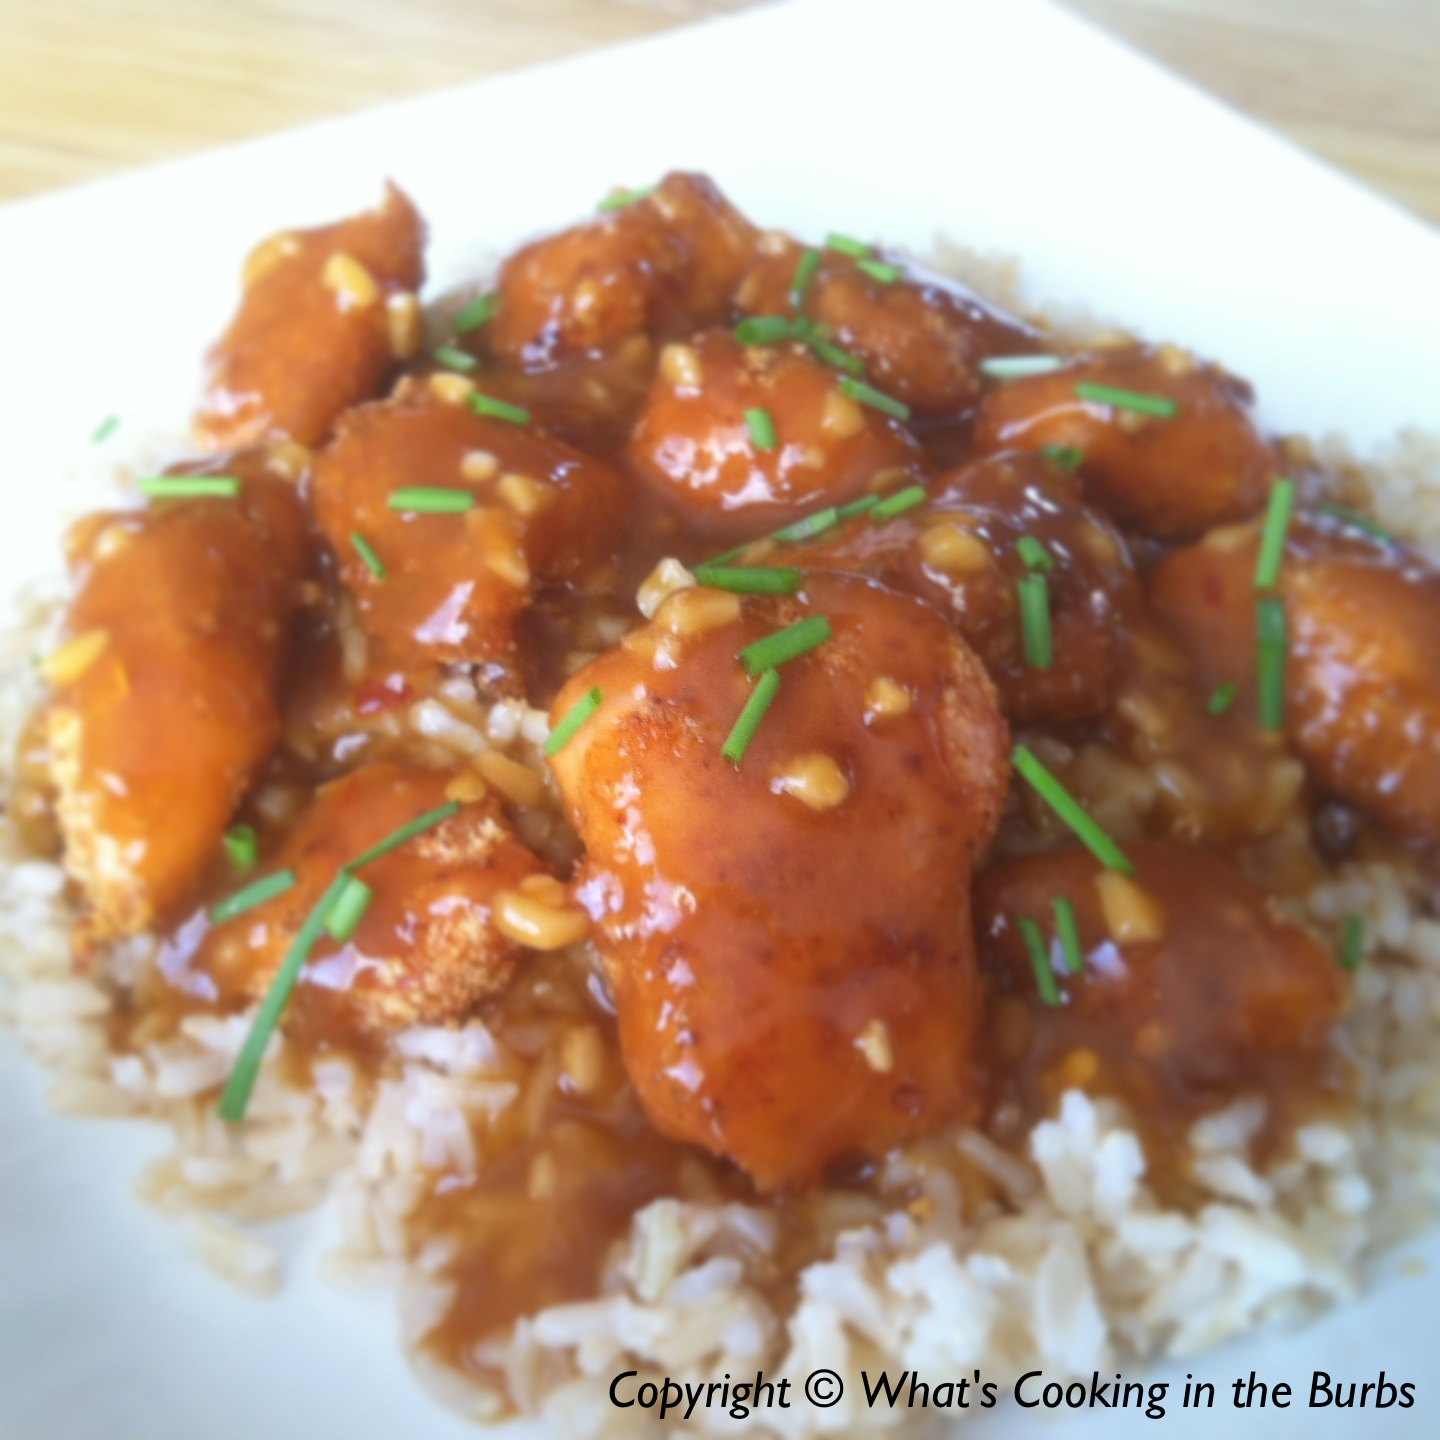 What's Cooking in the Burbs: Crispy Baked Orange Chicken